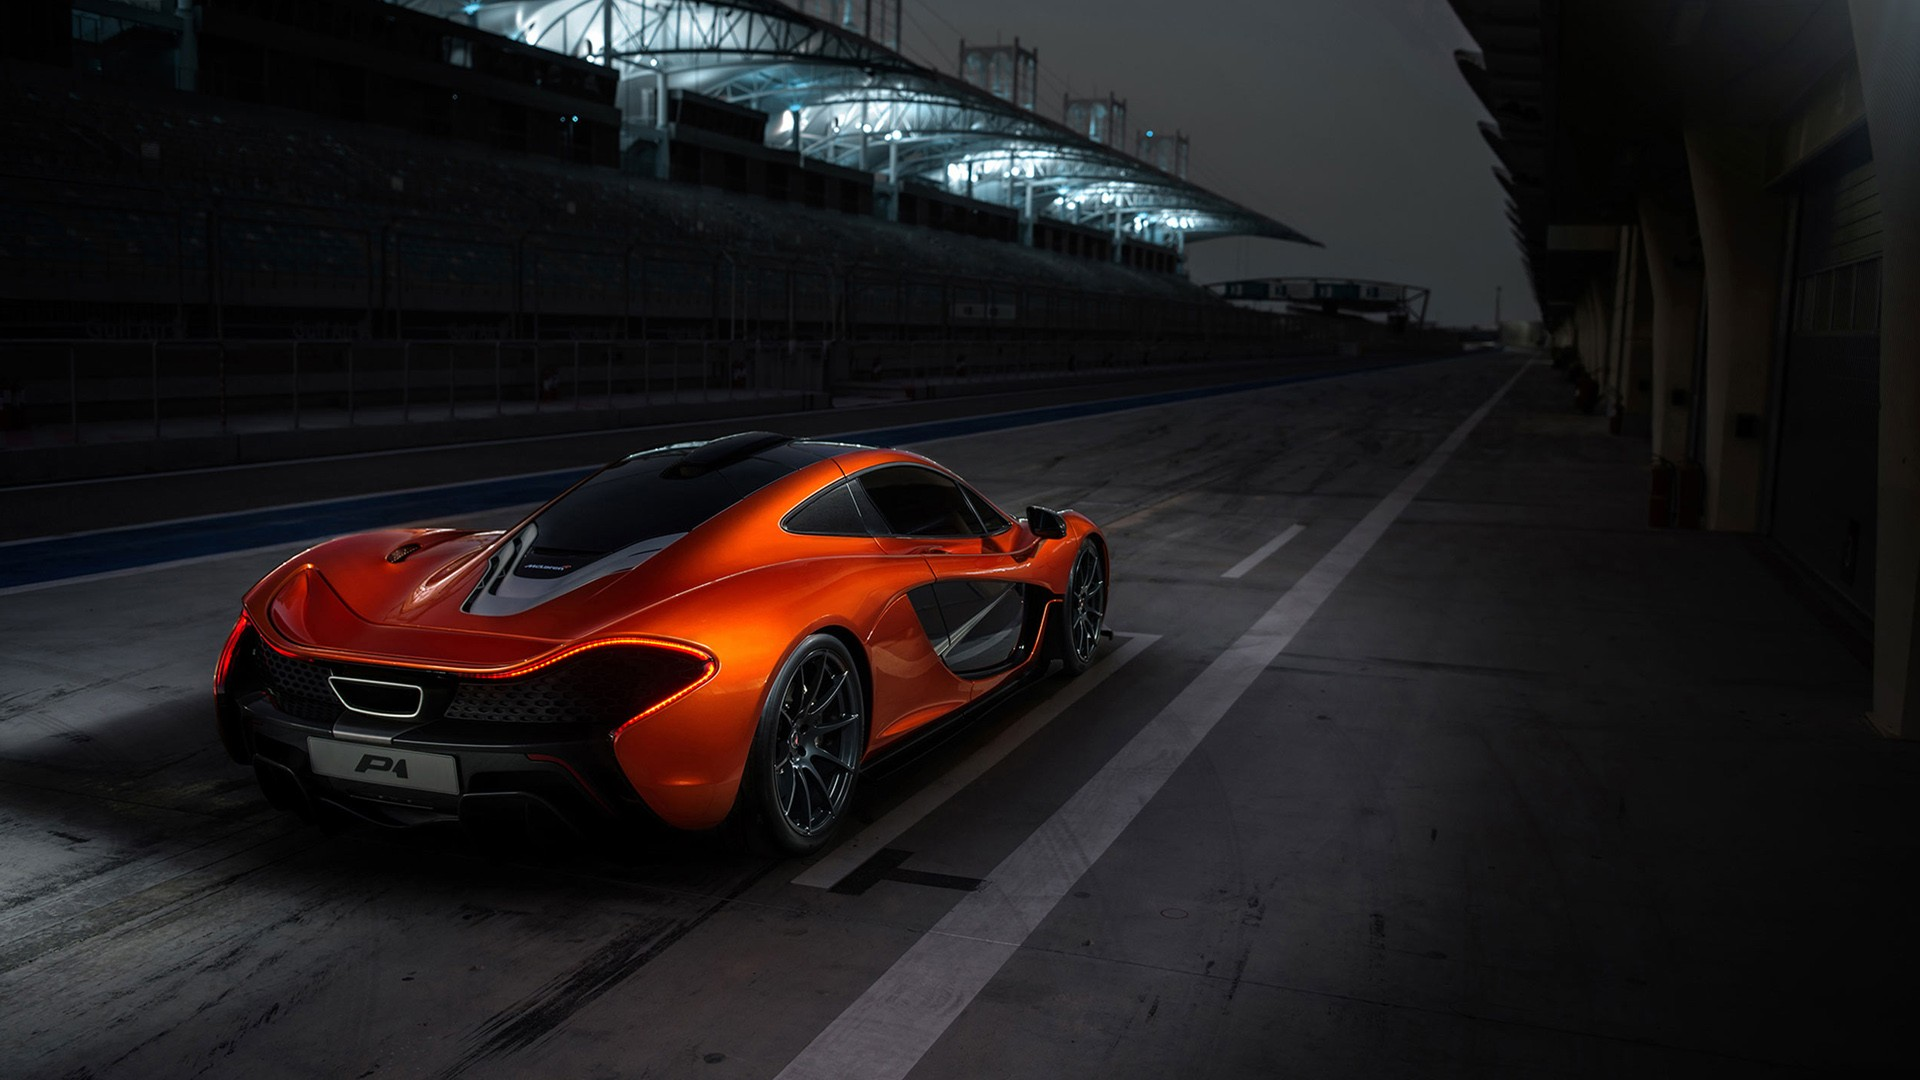 Mclaren P1 2013 2 Wallpaper Hd Car Wallpapers Id 3303